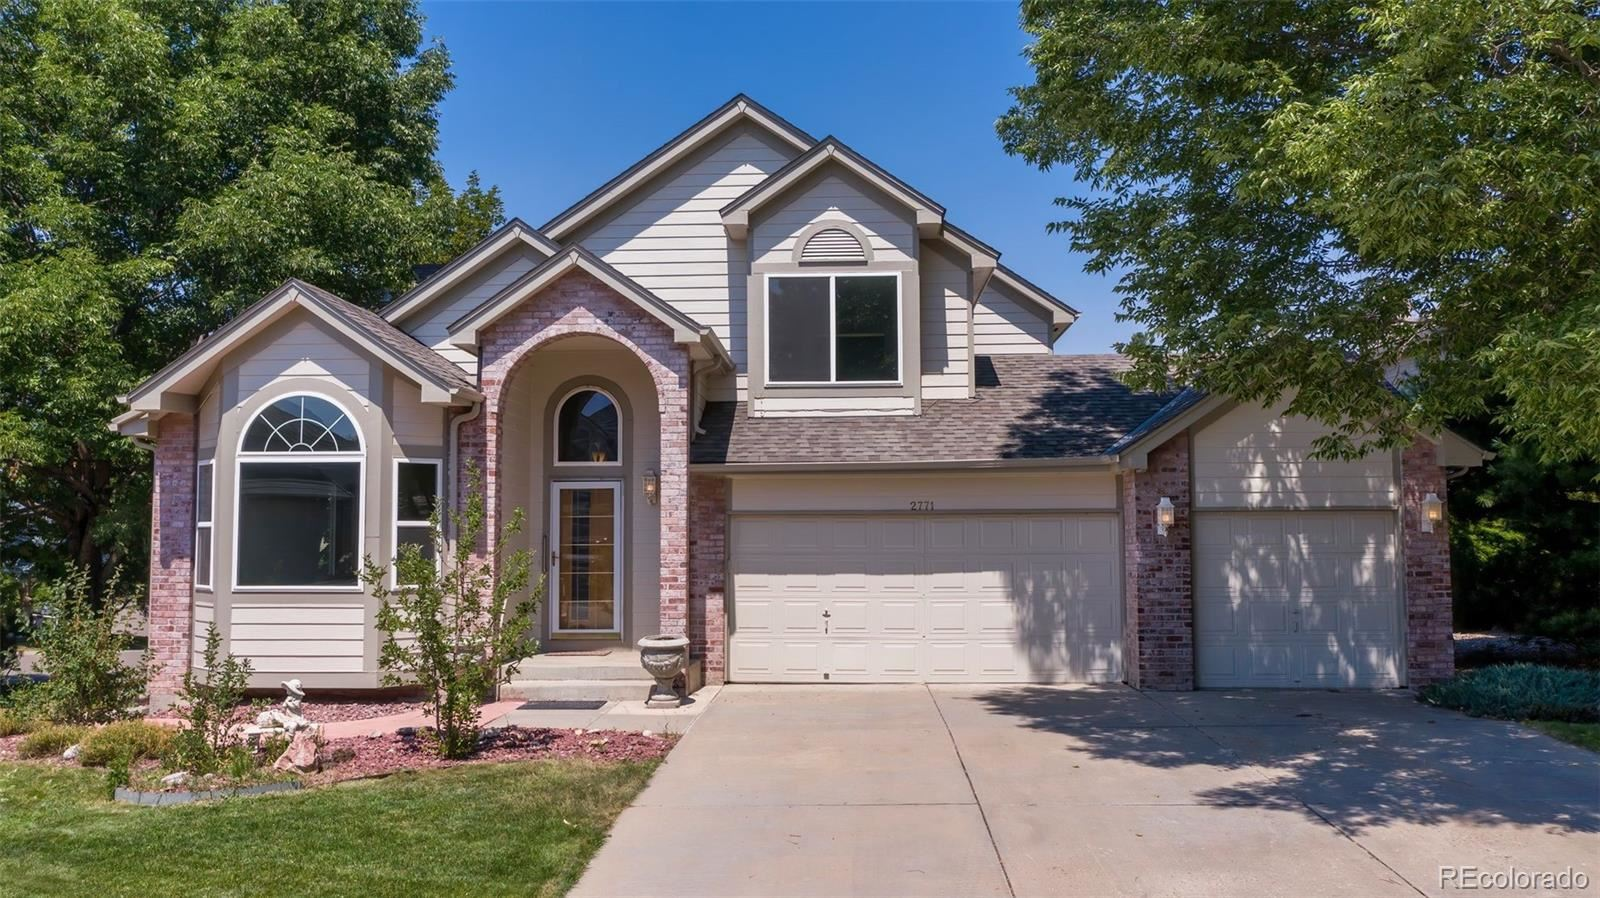 2771 W 116th Court, Westminster, CO 80234 - #: 2336805